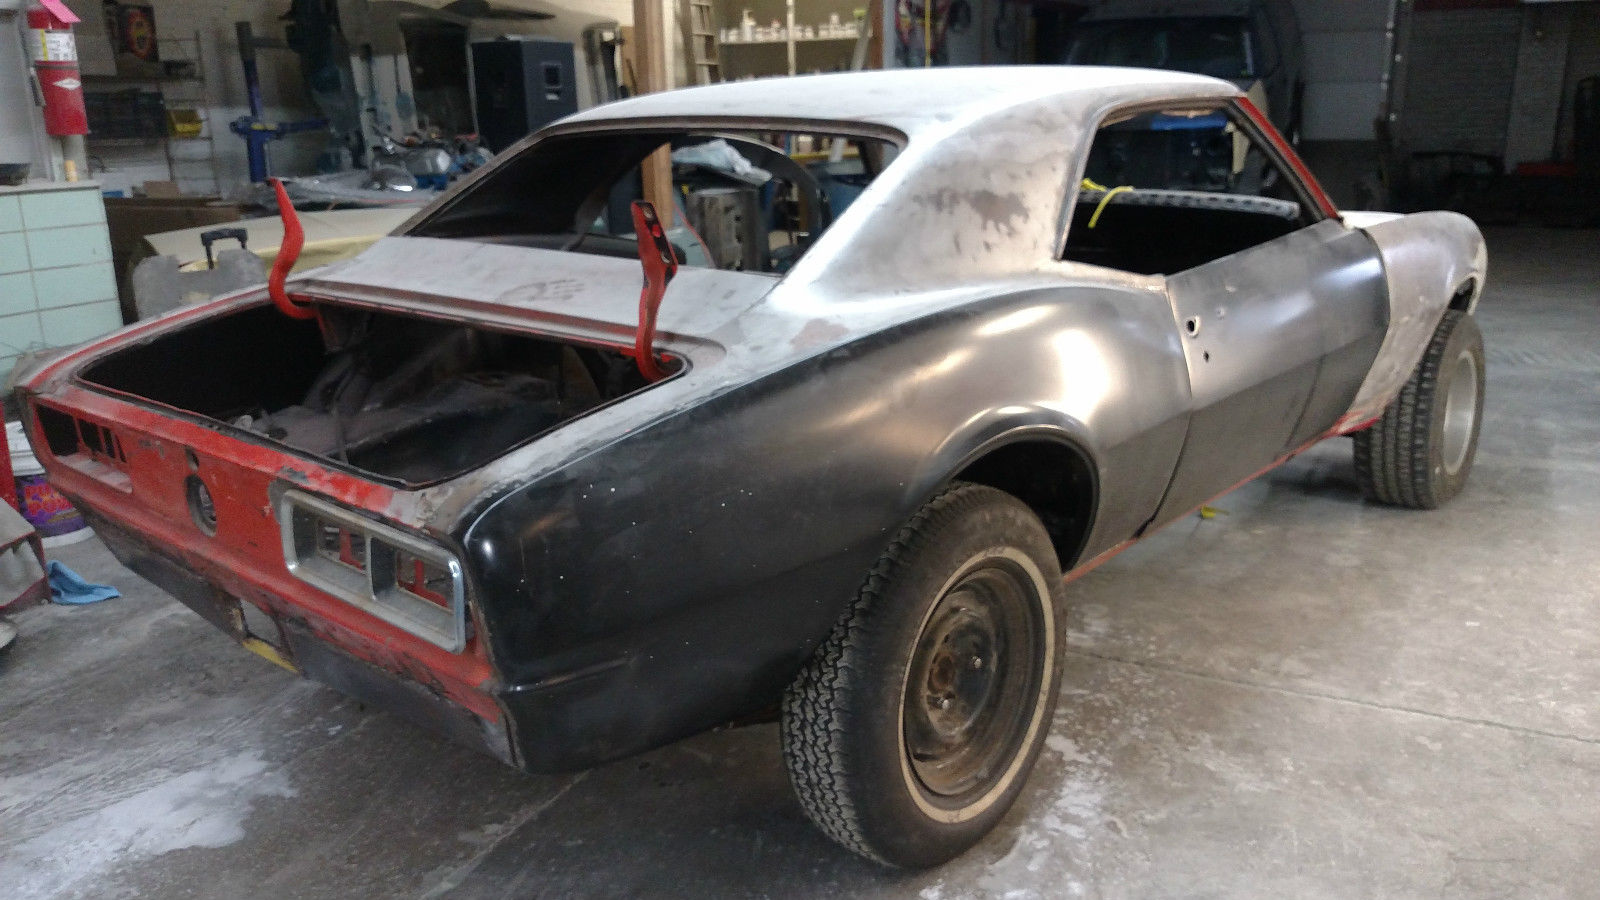 1968 Camaro Project For Sale >> 1968 Camaro Project Car Classic Chevrolet Camaro 1968 For Sale